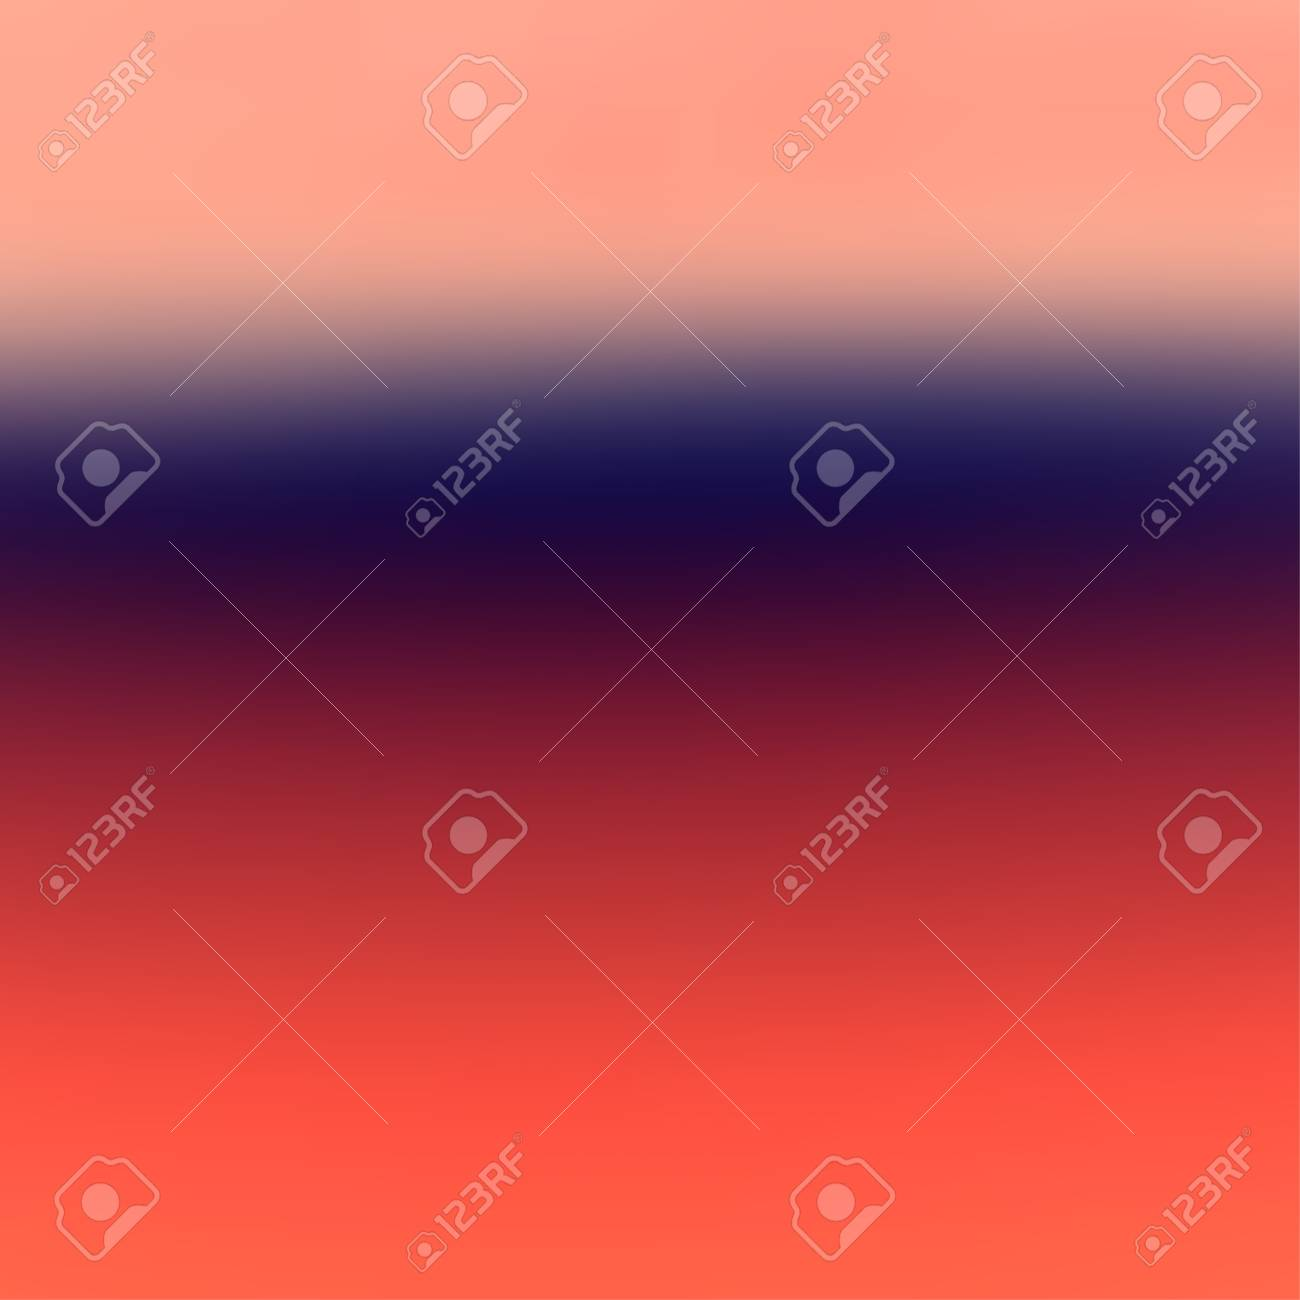 Square abstract smooth blur orange and blue background for any square abstract smooth blur orange and blue background for any design to put over stock altavistaventures Images